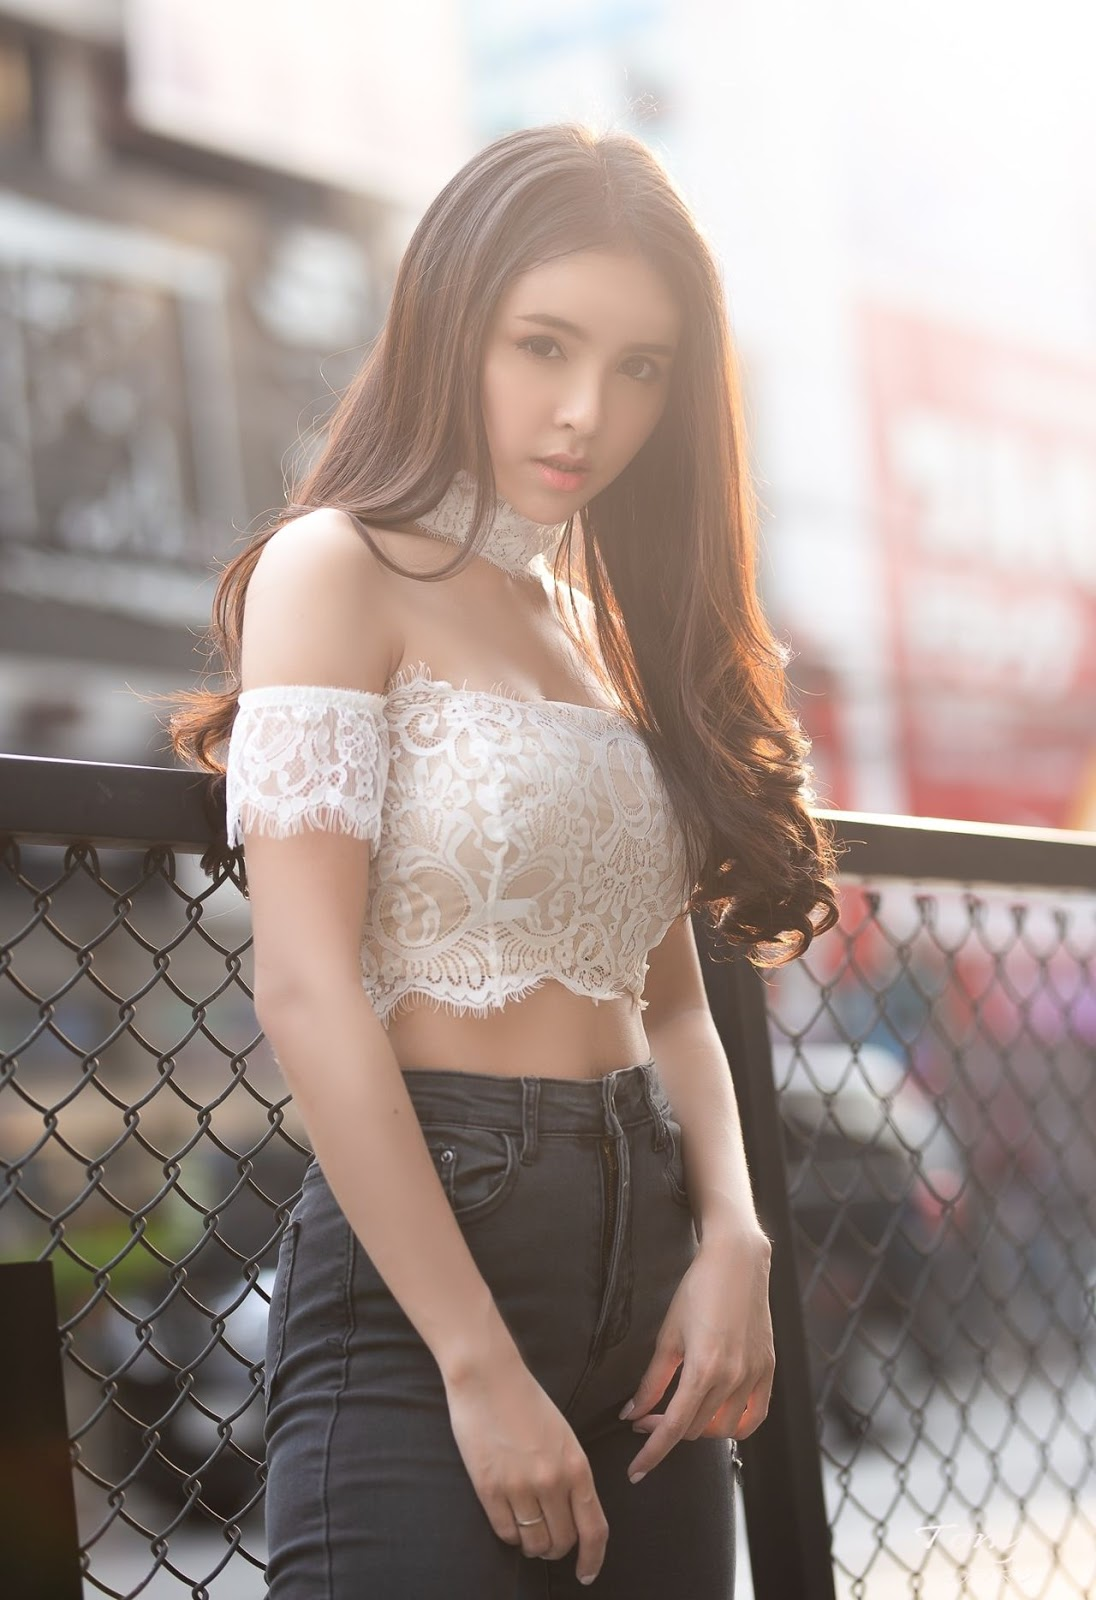 Image-Thailand-Beautiful-Model-Soithip-Palwongpaisal-Transparent-Lace-Crop-Top-And-Jean-TruePic.net- Picture-1